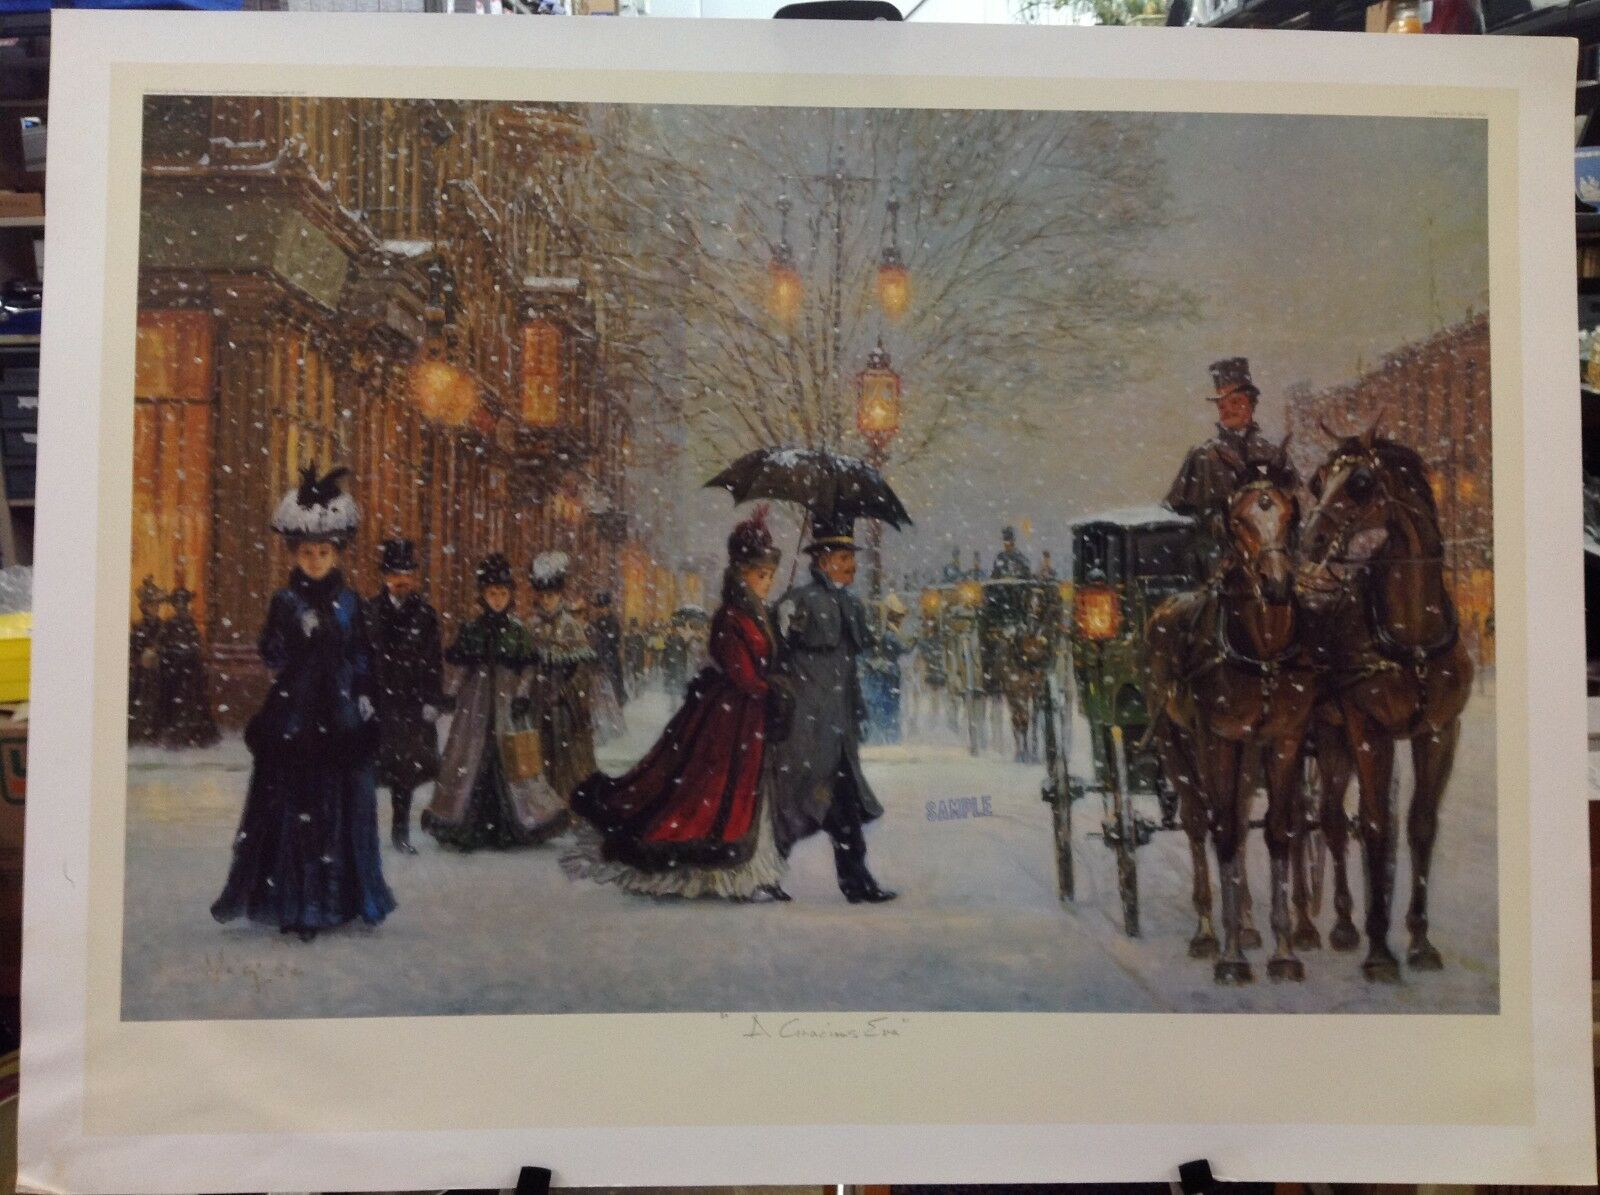 Alan Maley - A Gracious Era - Stamped Sample Print 36 x 27 (a)